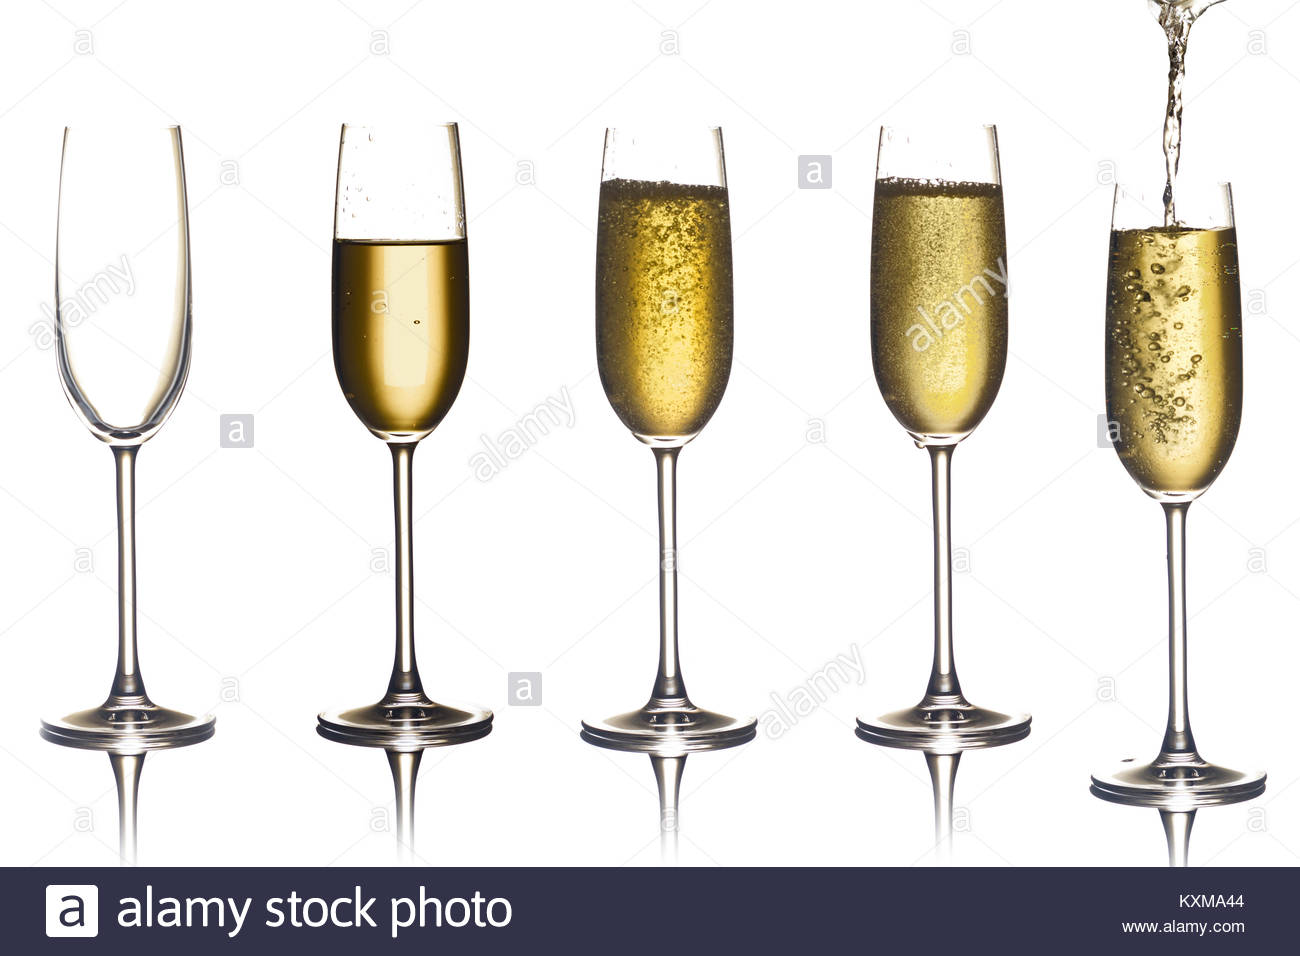 Festive Cheers Cut Out Stock Images & Pictures - Alamy